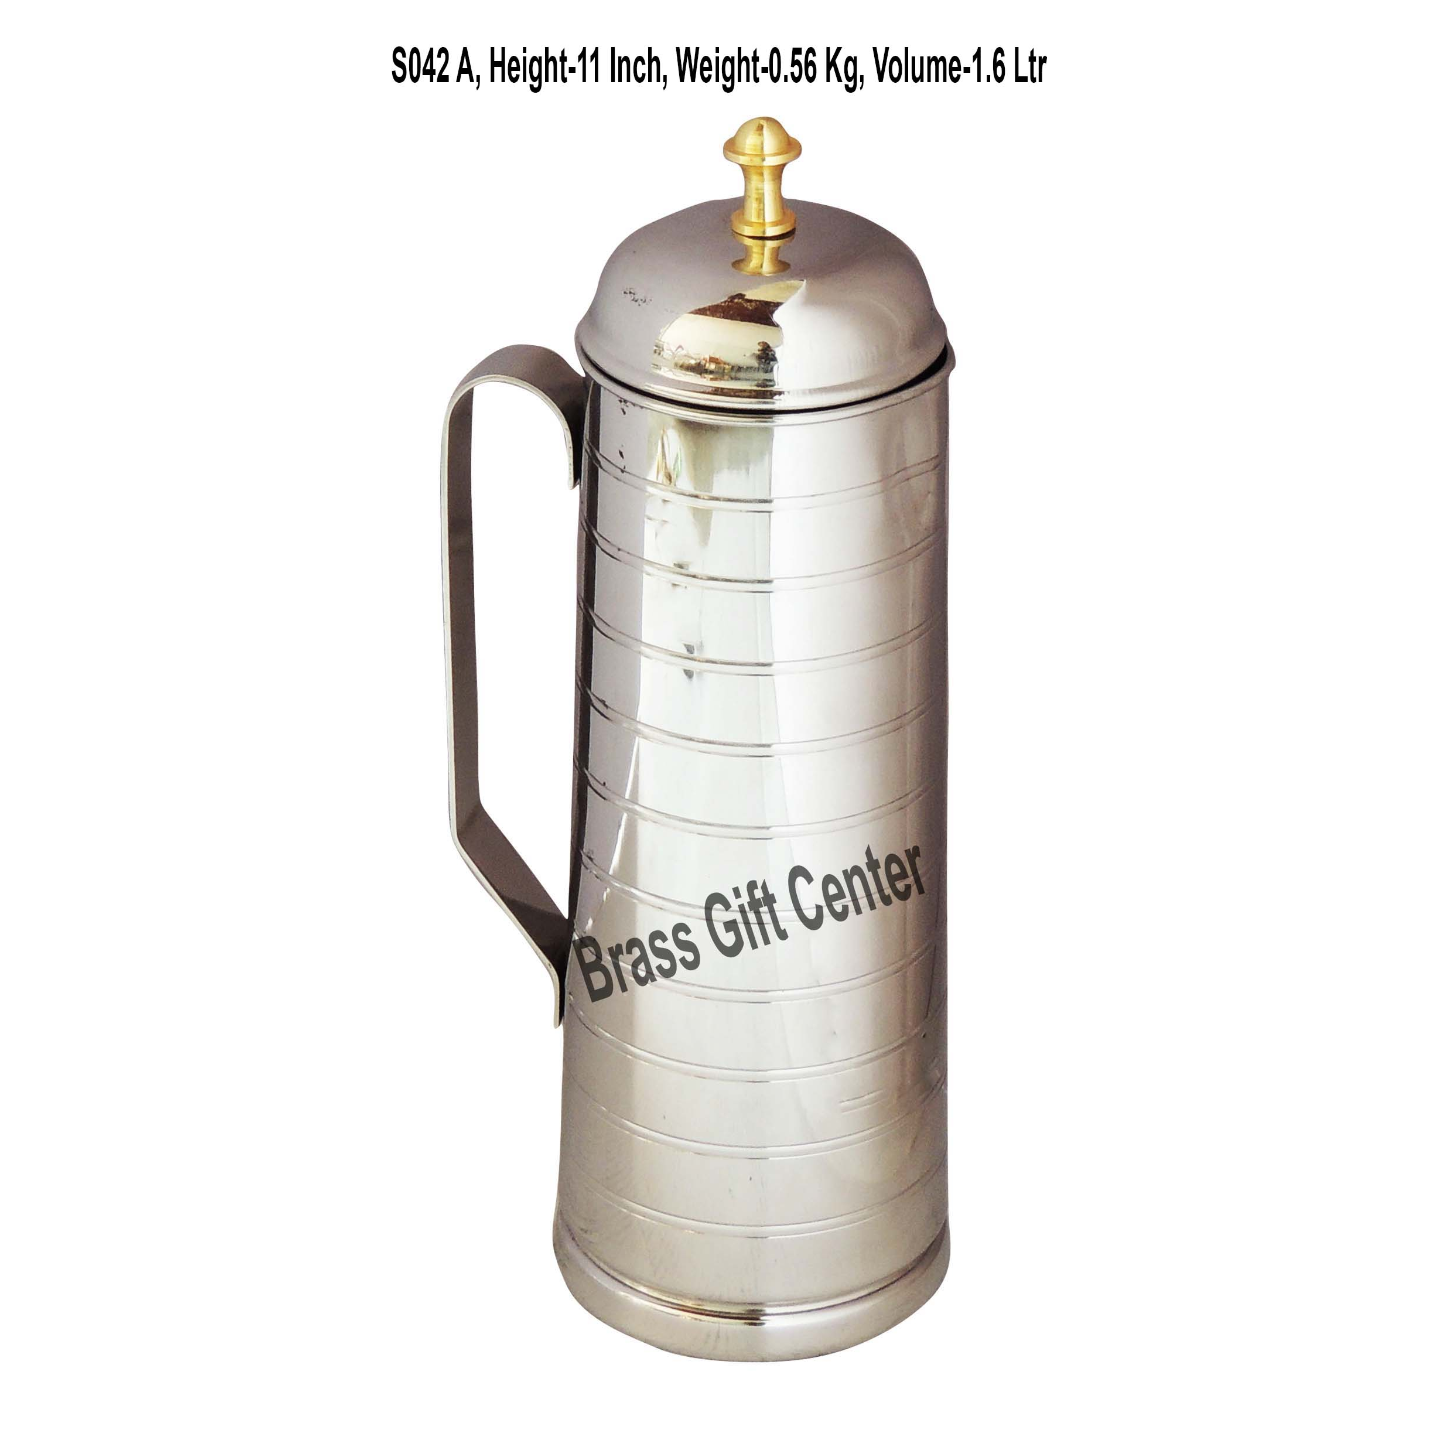 Stainless Steel Jug 1 Liter - 3.5x3.5x11.5  S042 A